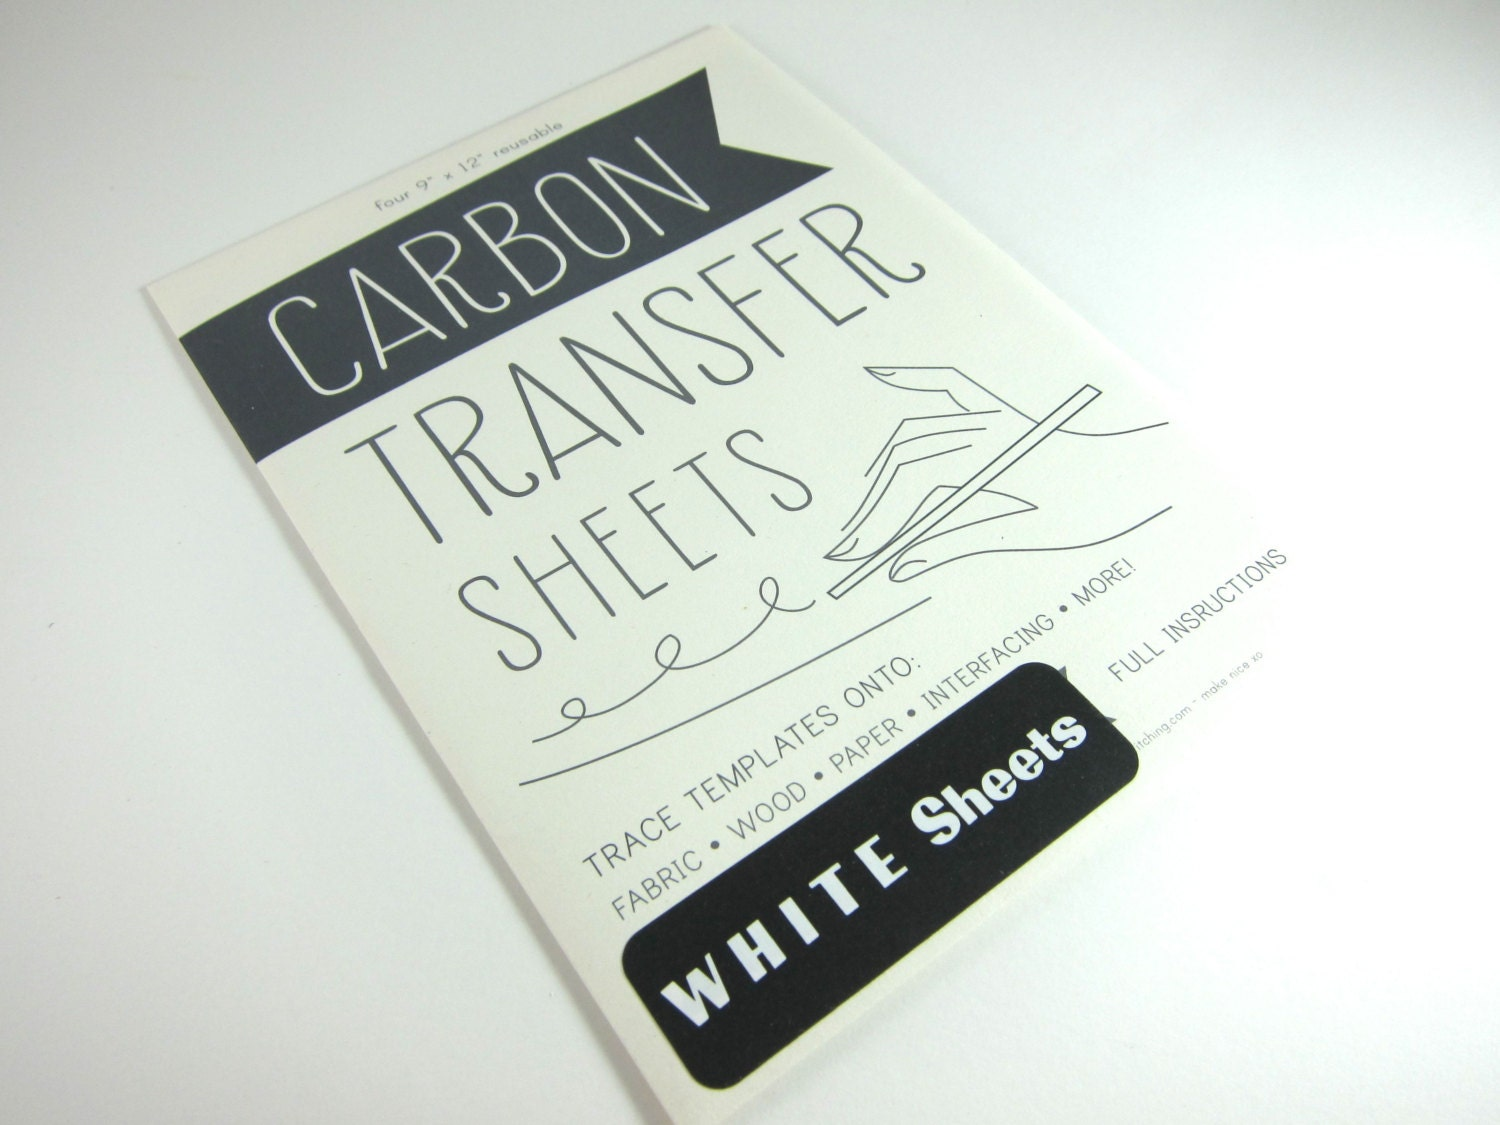 Where to buy paper use carbon transfer